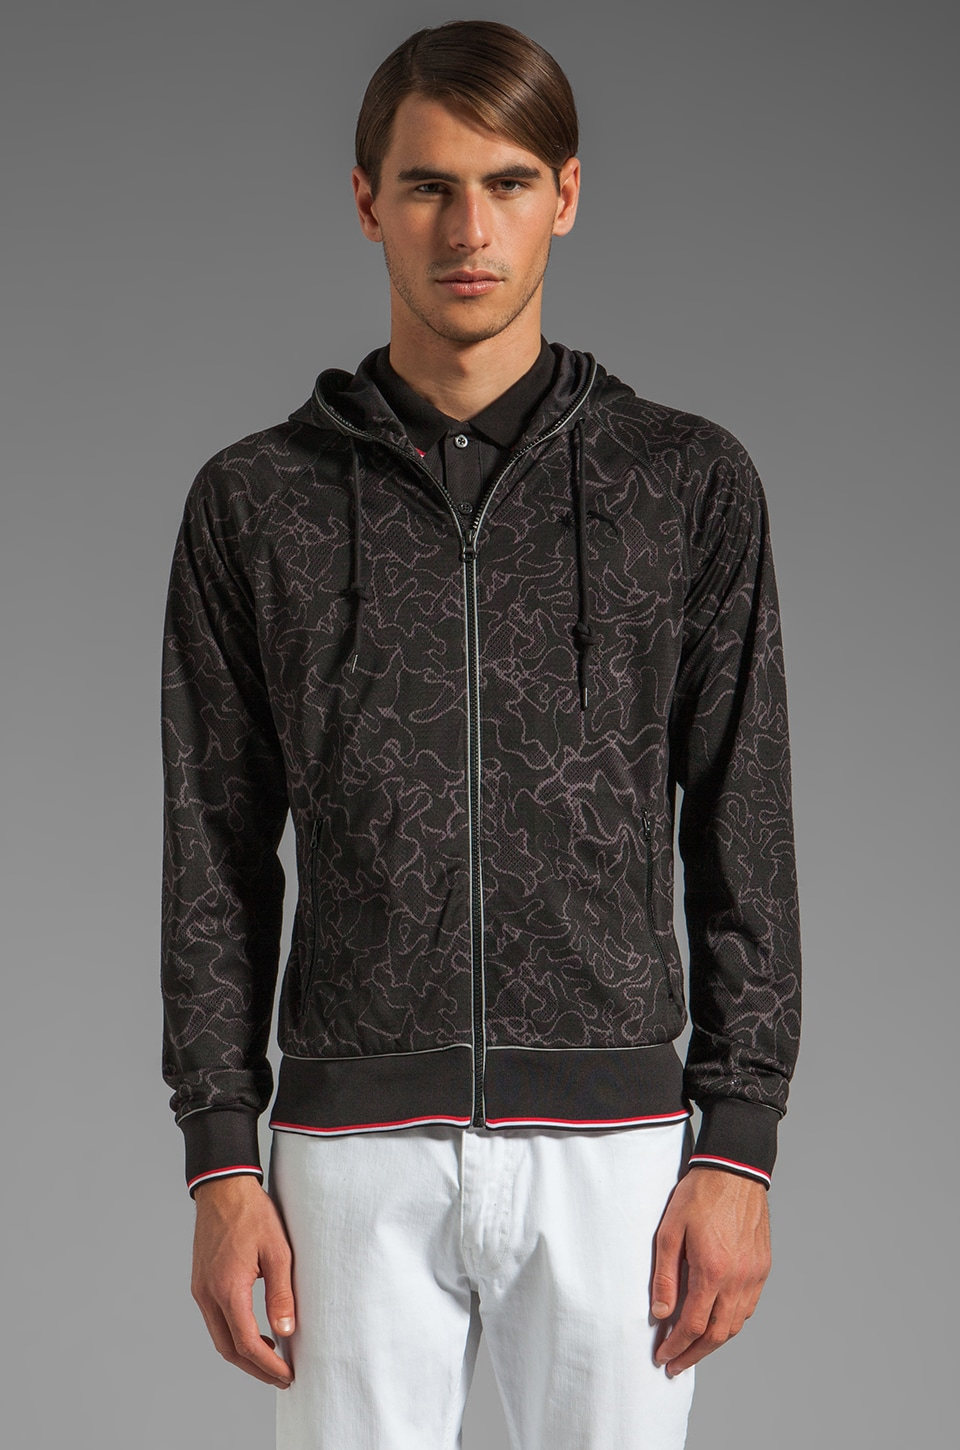 Puma by Mihara Hooded Track Jacket in Black